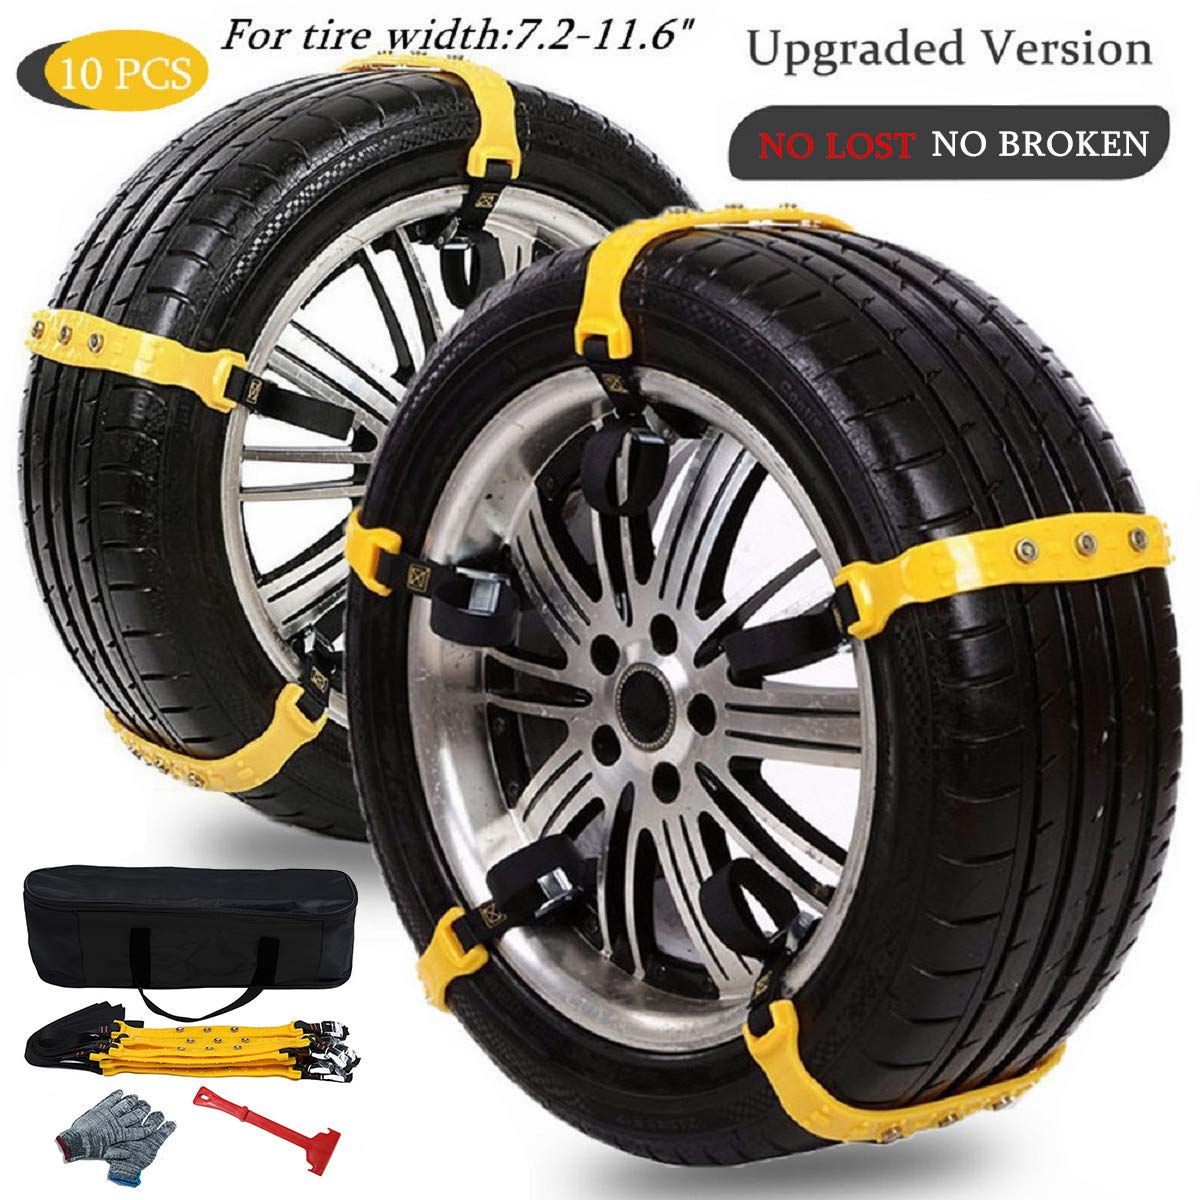 Anti Slip Snow Chains for SUV Car Adjustable Universal Emergency Thickening Anti Skid Tire Chain,Winter Driving Security Chains,Traction Mud Snow Chains for Car/Truck Tire Width 7.2-11.6'',10 Pcs